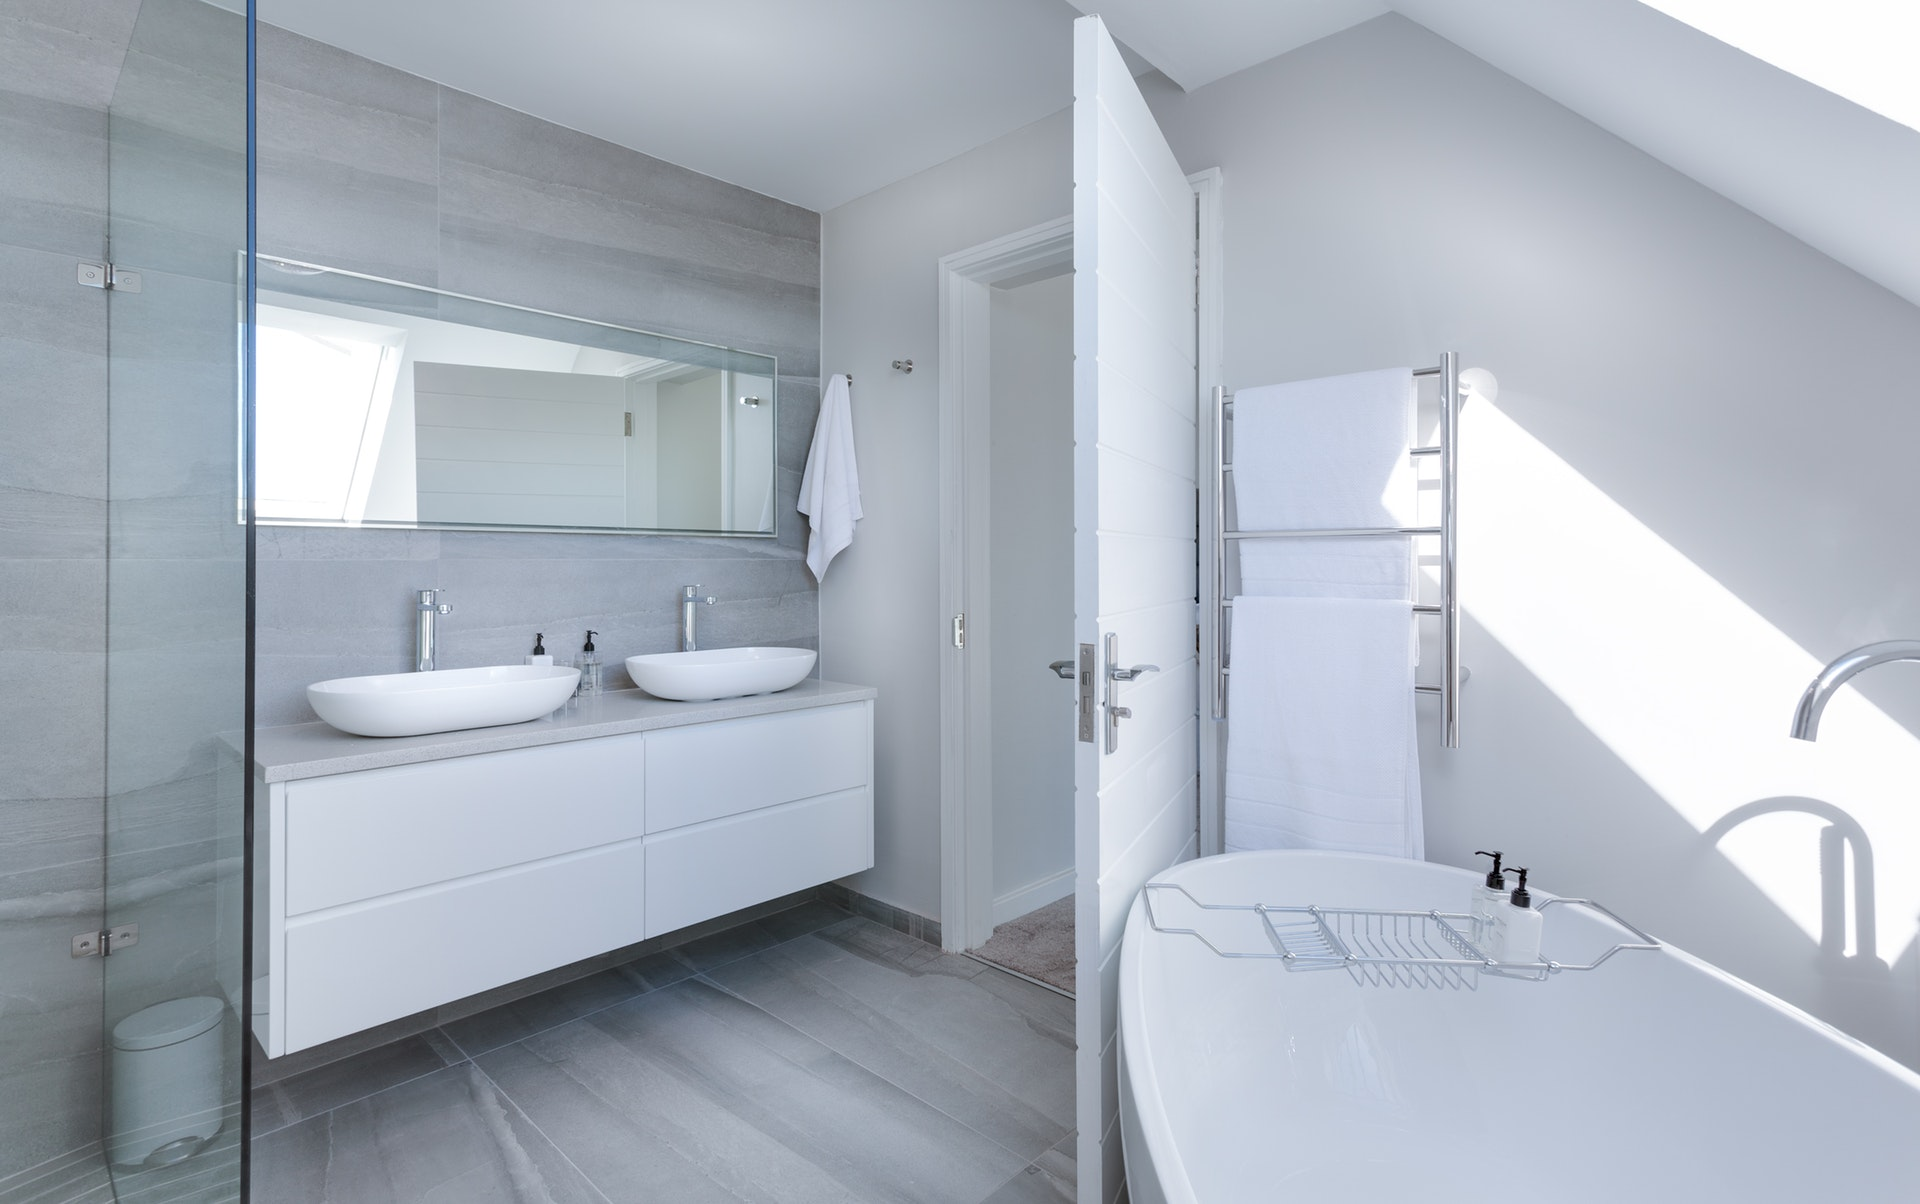 Different Ways to Make a Bathroom More Eco-Friendly